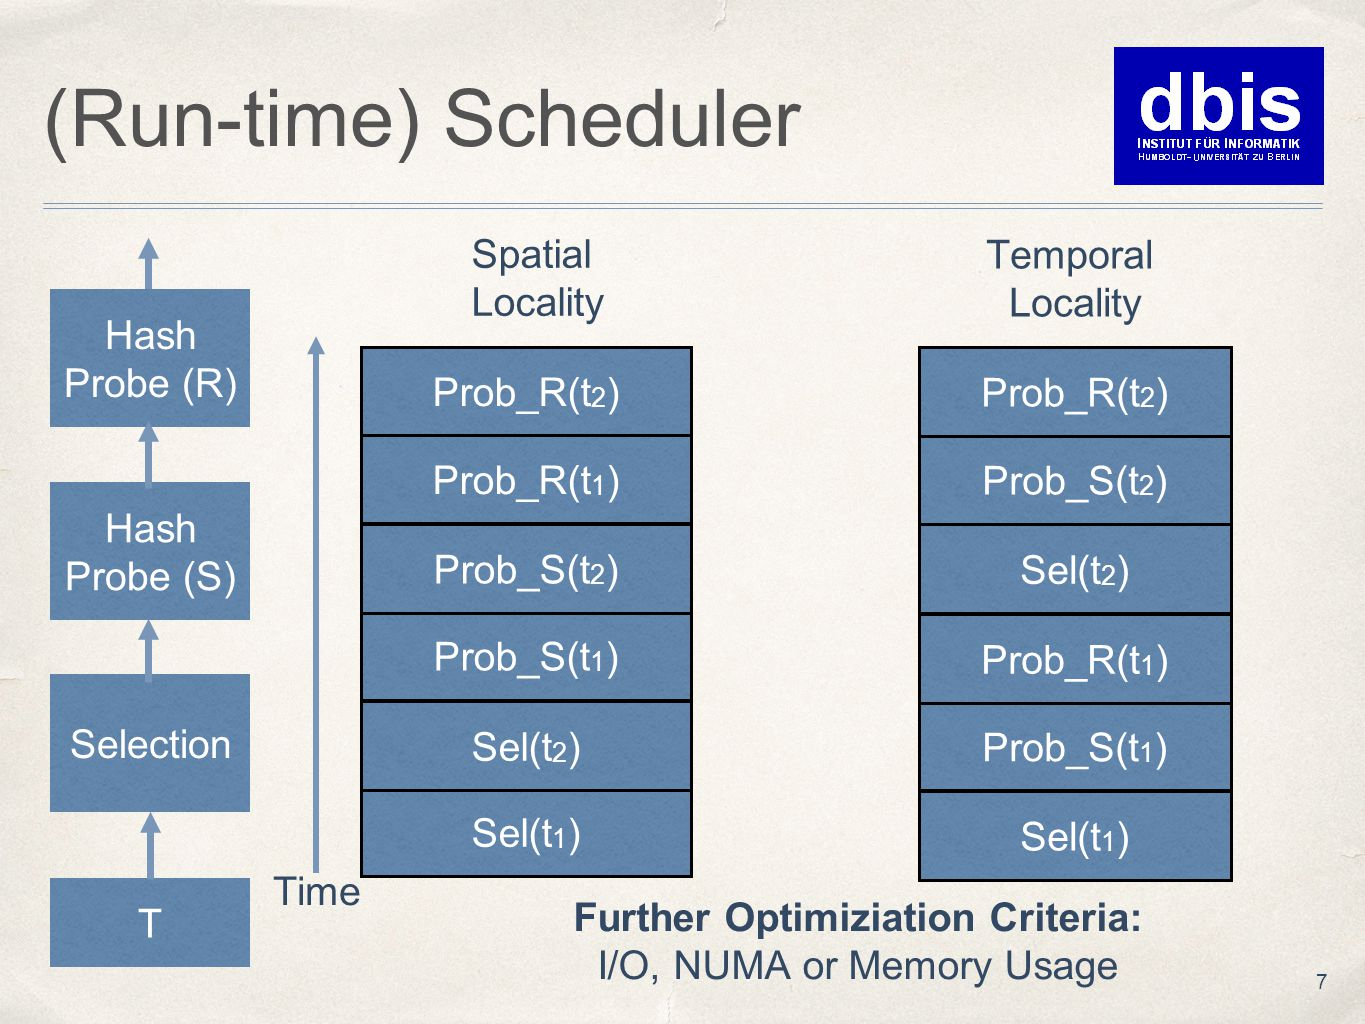 (Run-time) Scheduler 7 T Selection Hash Probe (S) Hash Probe (R) Spatial Locality Sel(t 1 ) Sel(t 2 ) Prob_S(t 1 ) Prob_S(t 2 ) Prob_R(t 2 ) Prob_R(t